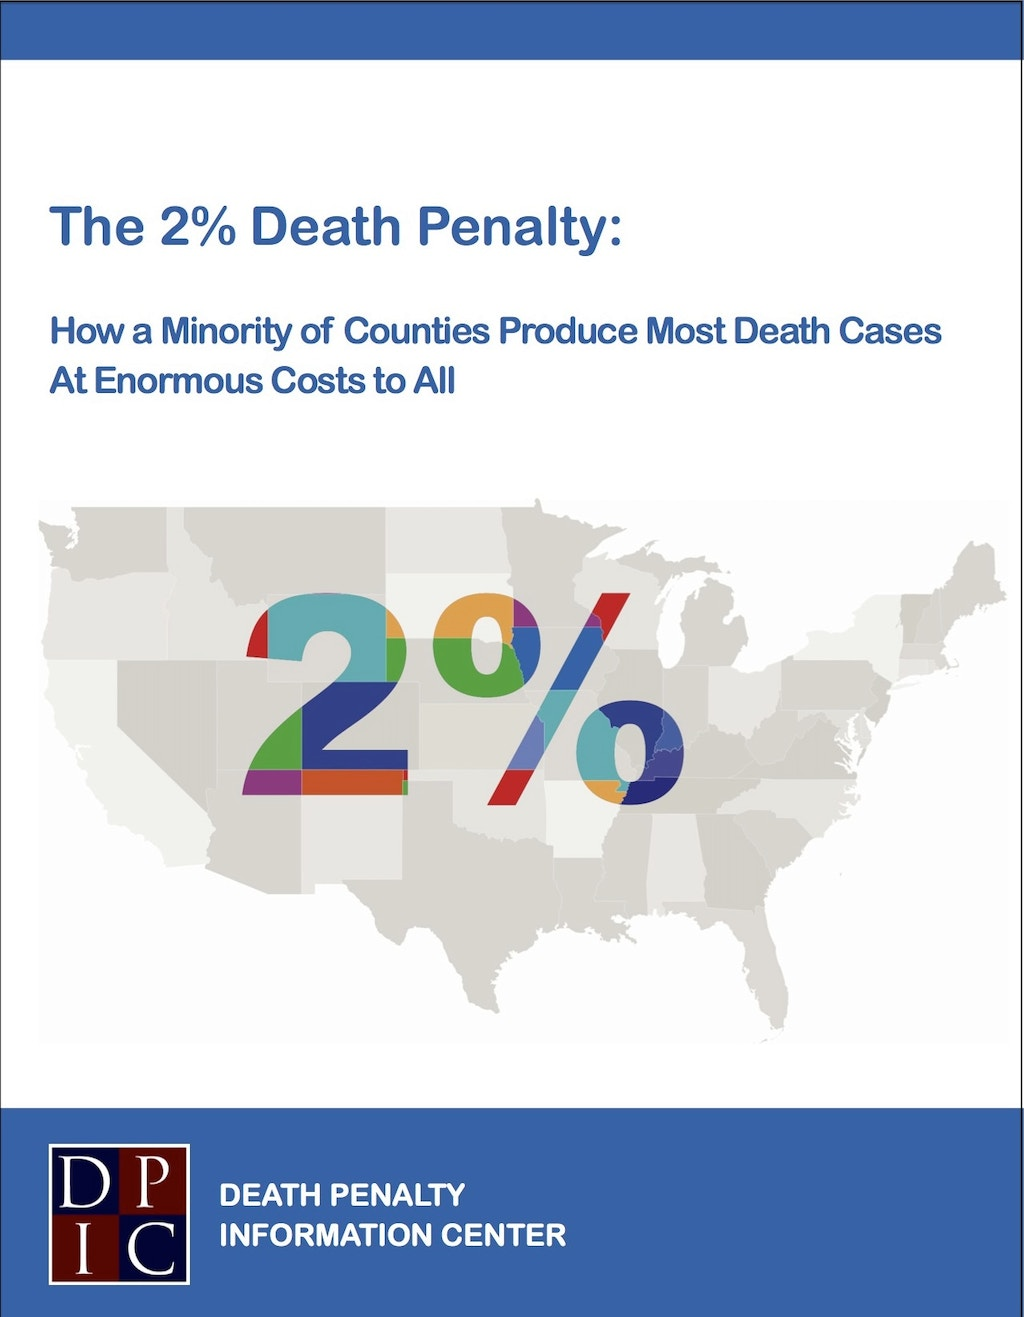 NEW DPIC REPORT: Only 2% of Counties Responsible for Majority of U.S. Death Penalty